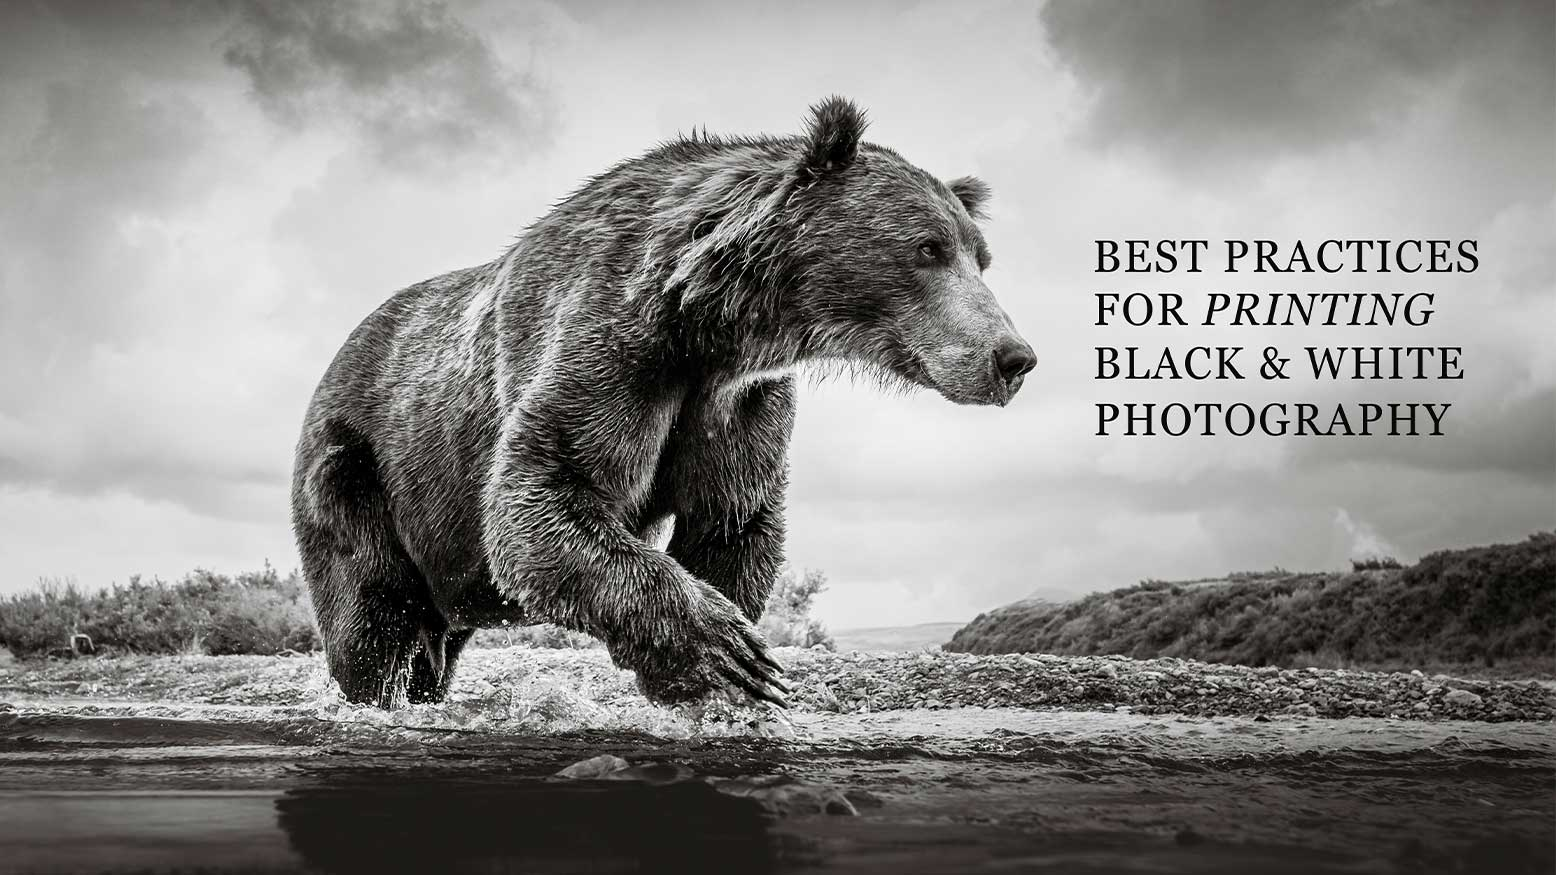 Best Practices for Printing Black & White Photography